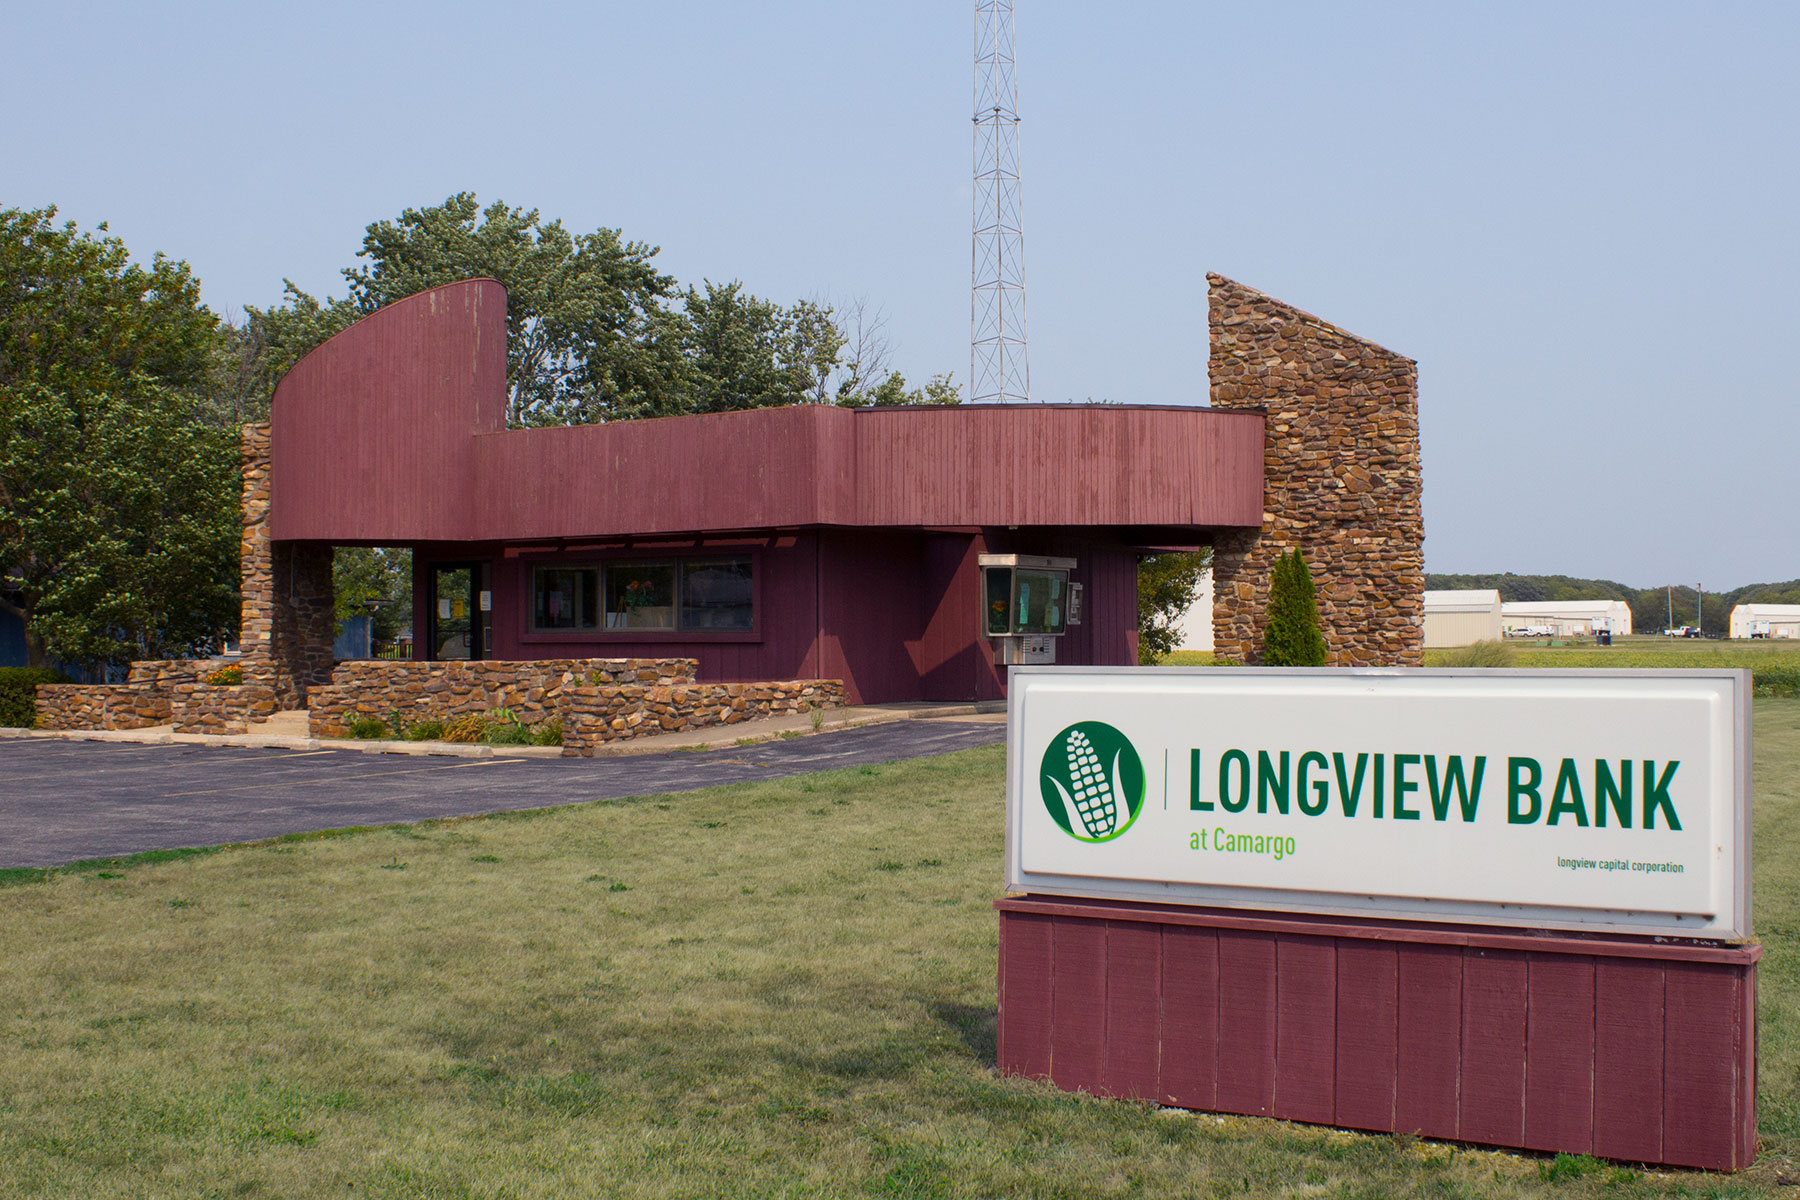 Longview Bank Camargo Illinois